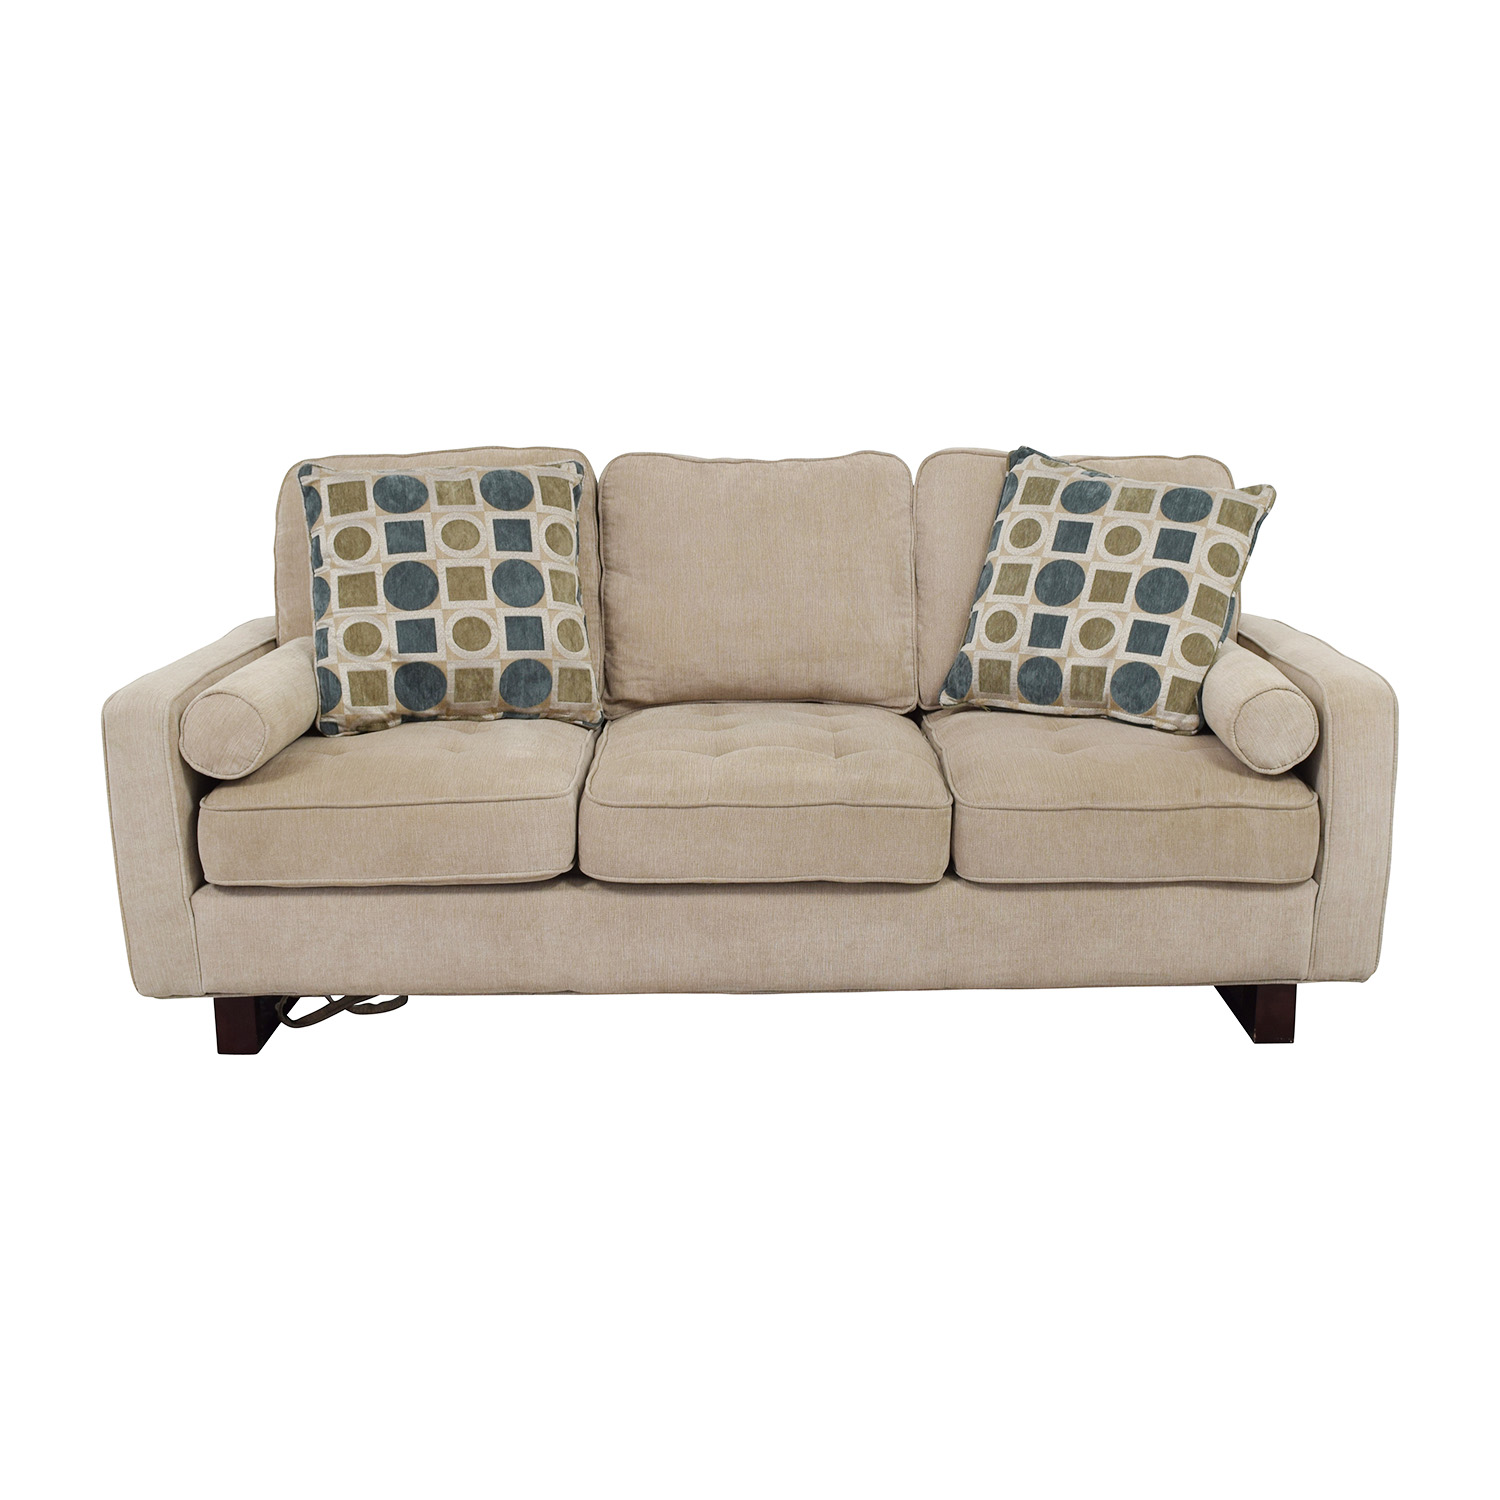 Bobs Discount Furniture Three-Seater Tan Couch / Sofas